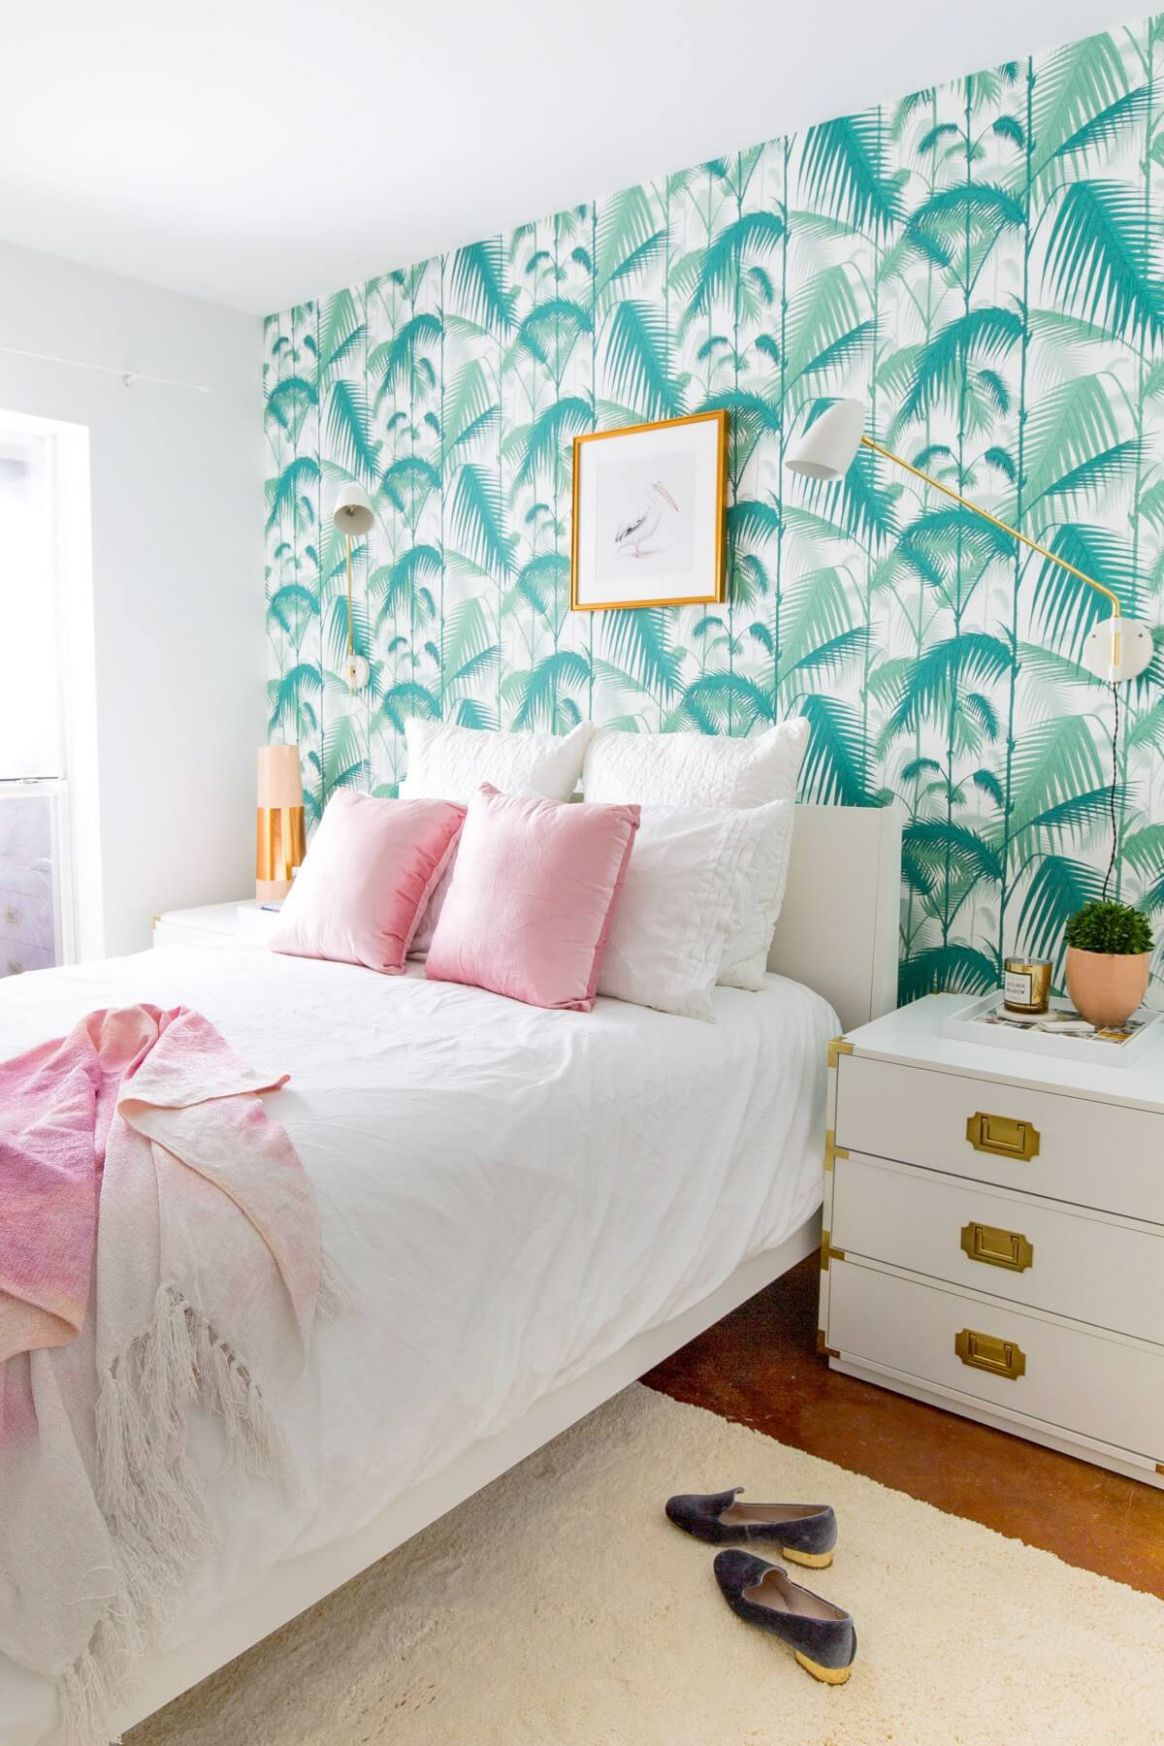 12 Best Tropical Style Decorating Ideas and Designs for 12 - bedroom ideas tropical